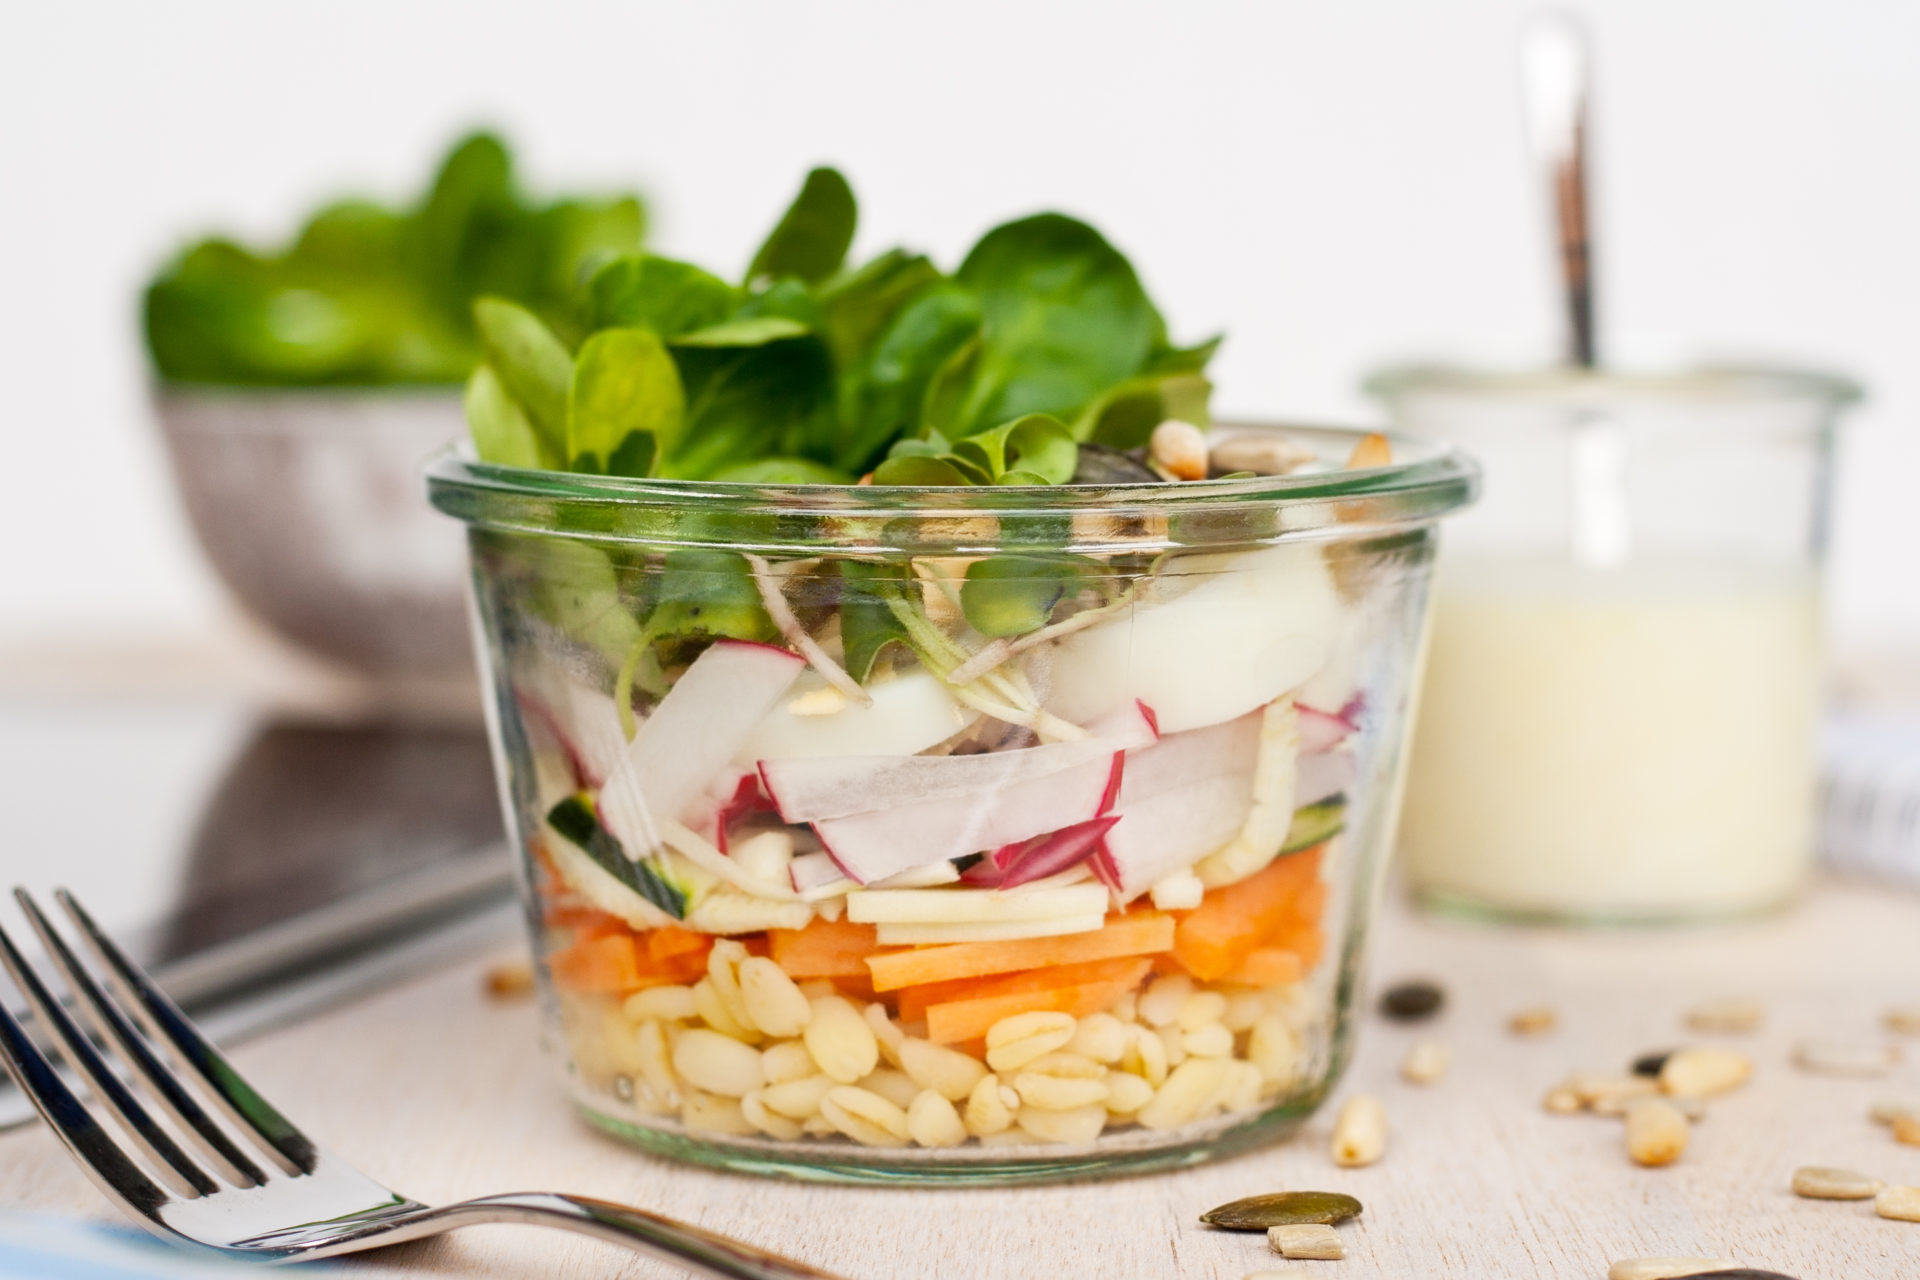 Fit und gesund: Lunch im Glas, heute Rohkostsalat // Raw Salad in a jar - take away salad by http://babyrockmyday.com/rohkostsalat/